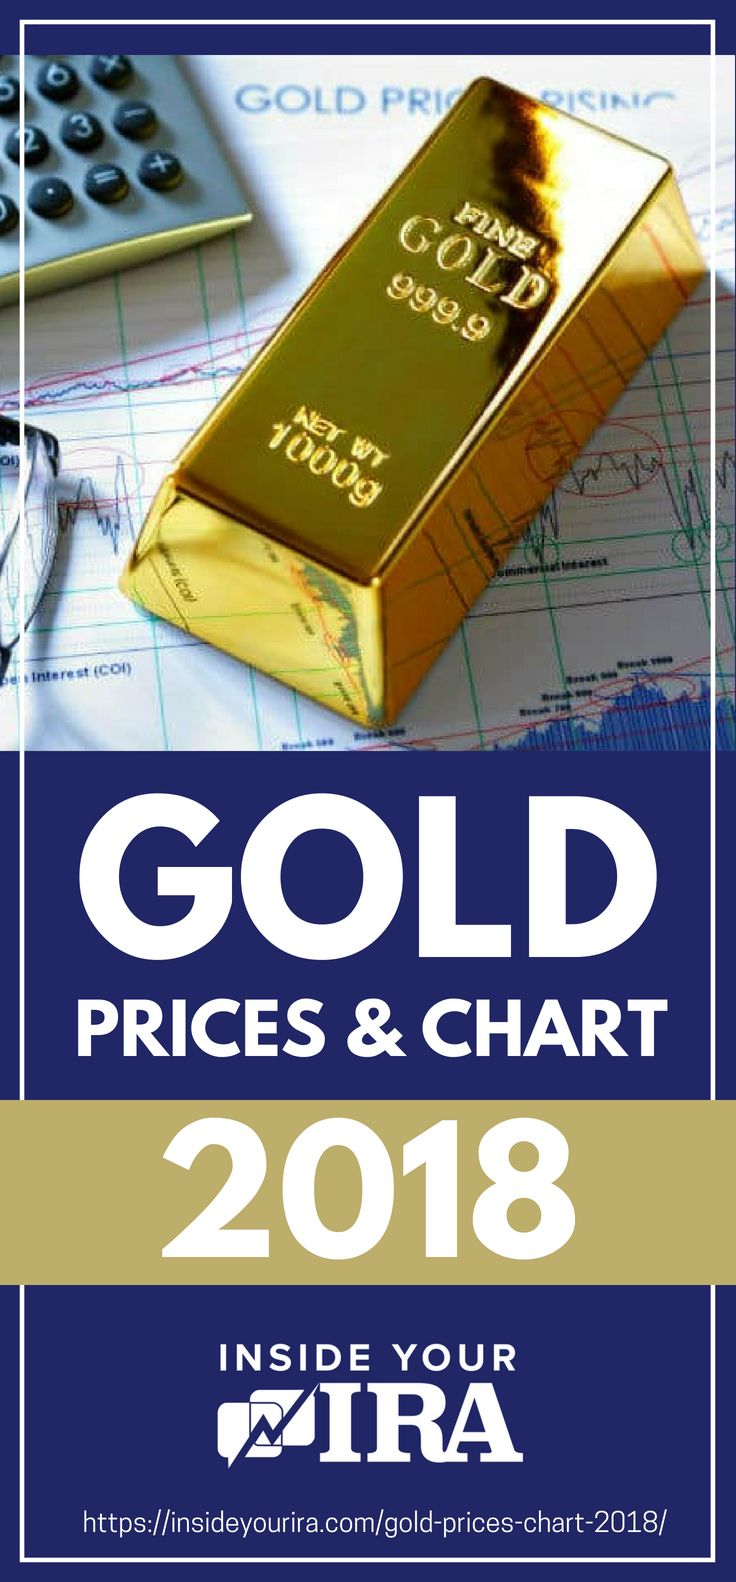 Gold Prices and Chart [2018] | Inside Your IRA https://insideyourira.com/gold-prices-chart/